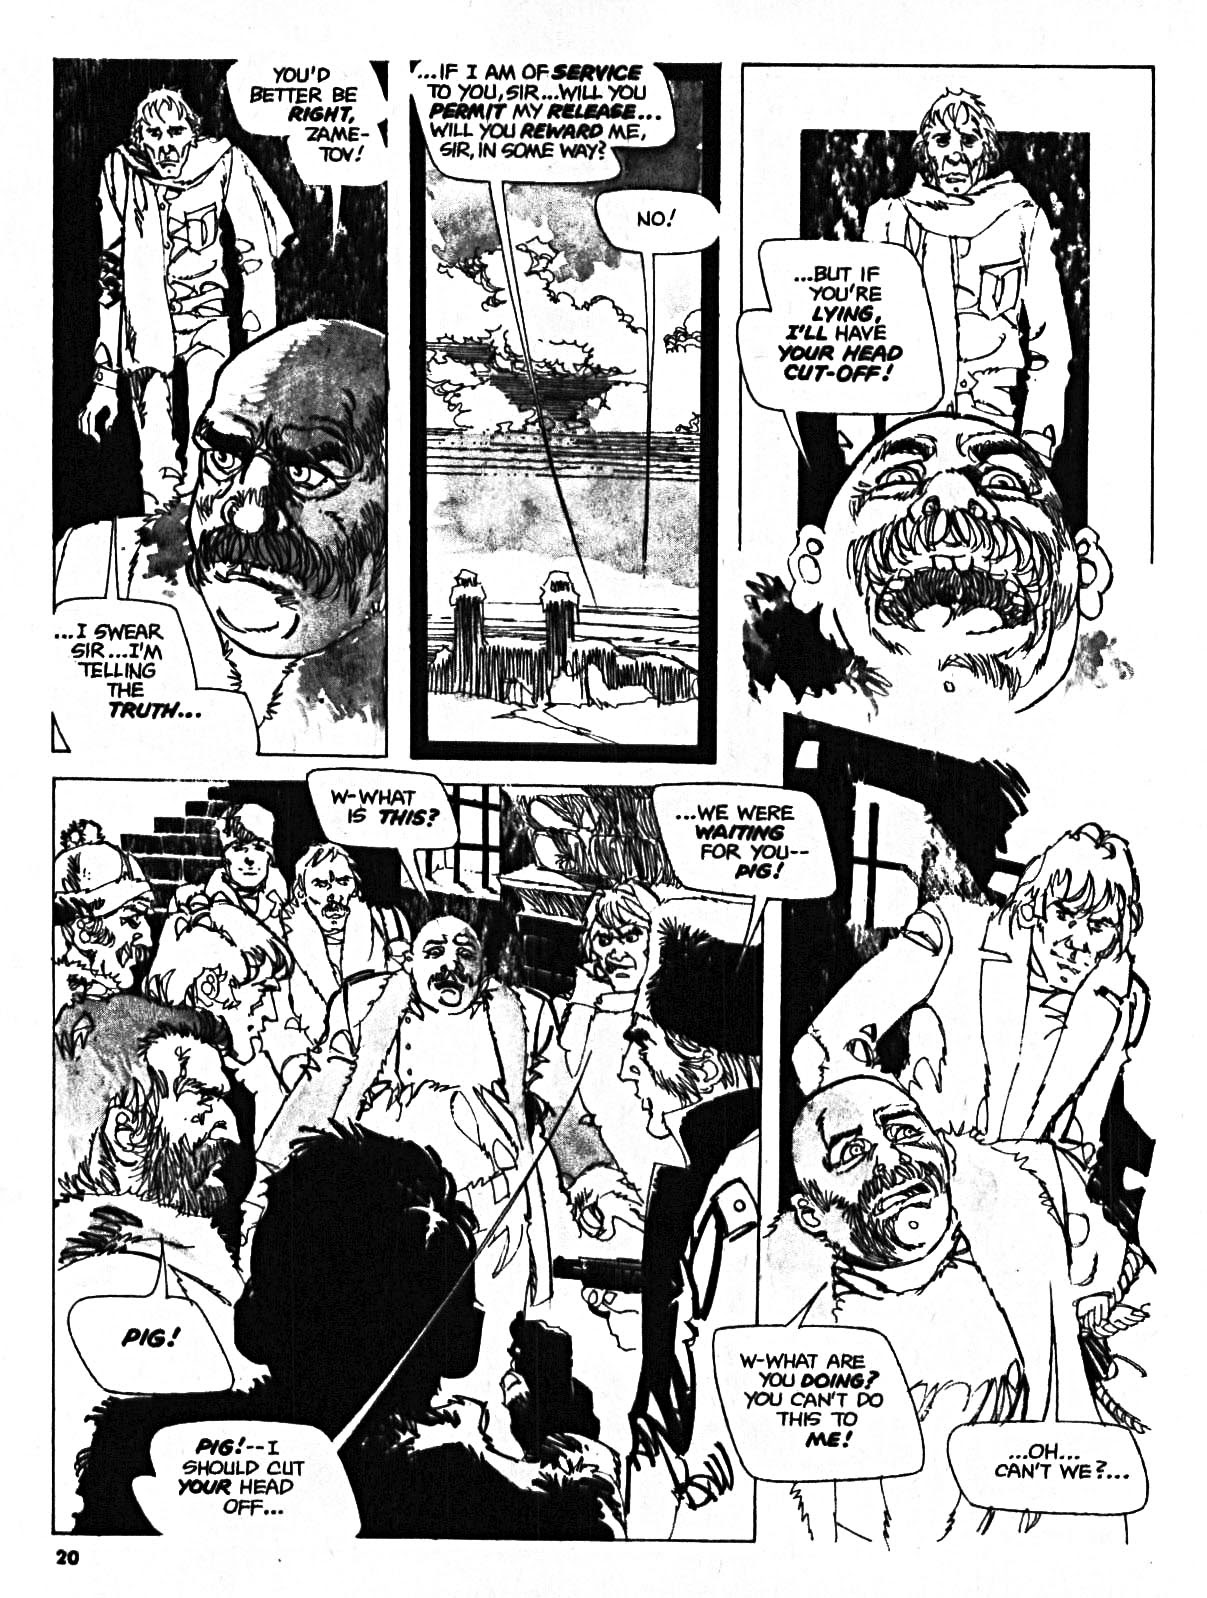 Scream (1973) issue 8 - Page 19